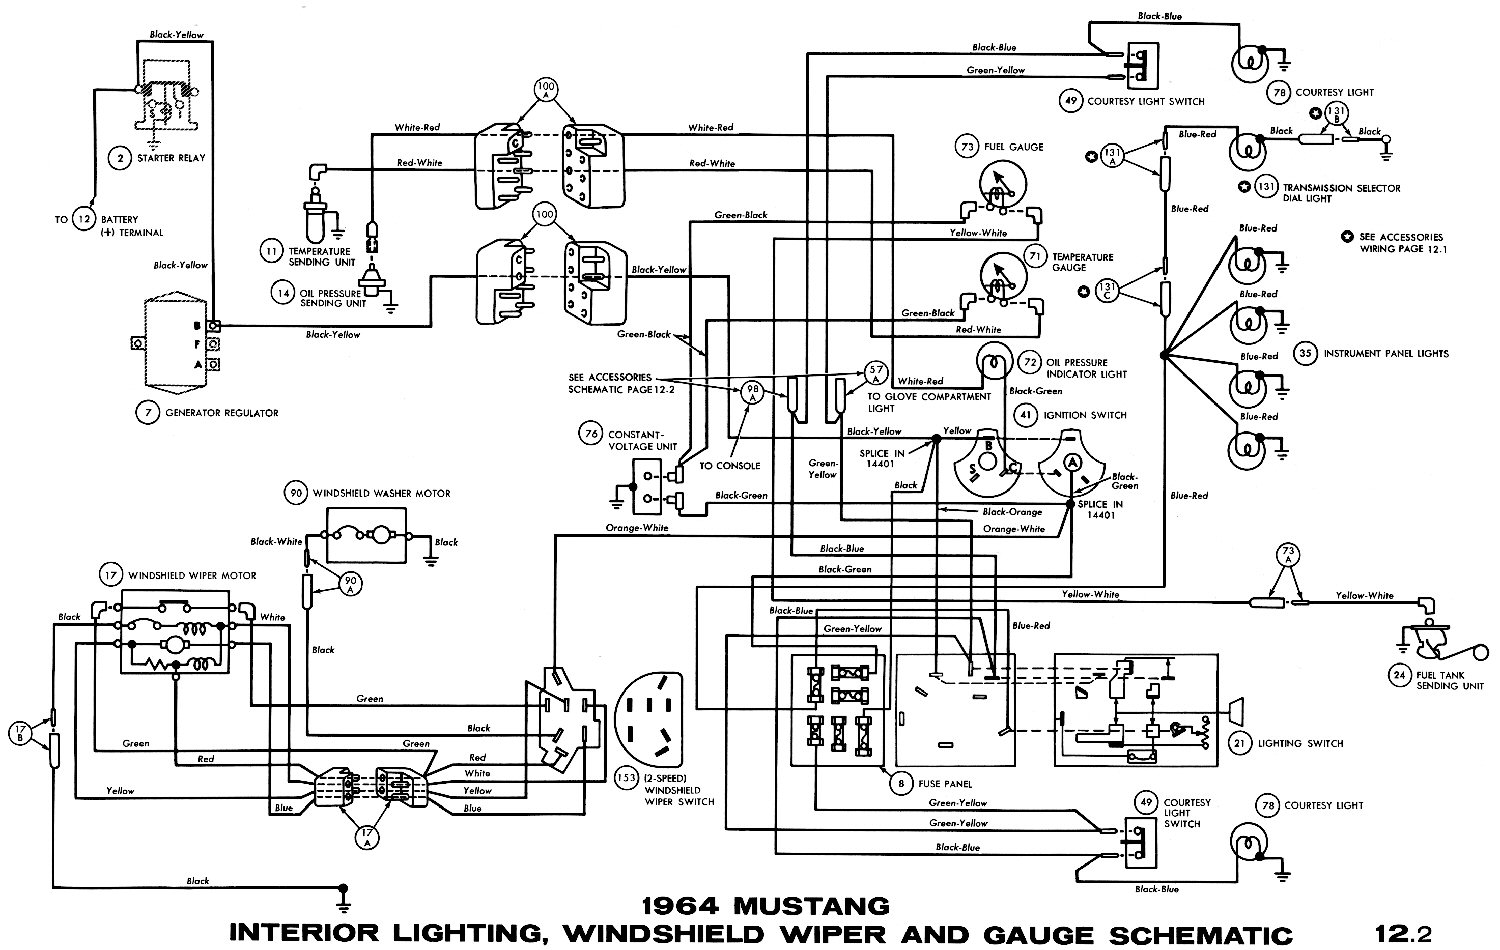 1964k 1964 mustang wiring diagrams average joe restoration 1967 mustang ignition wiring diagram at soozxer.org